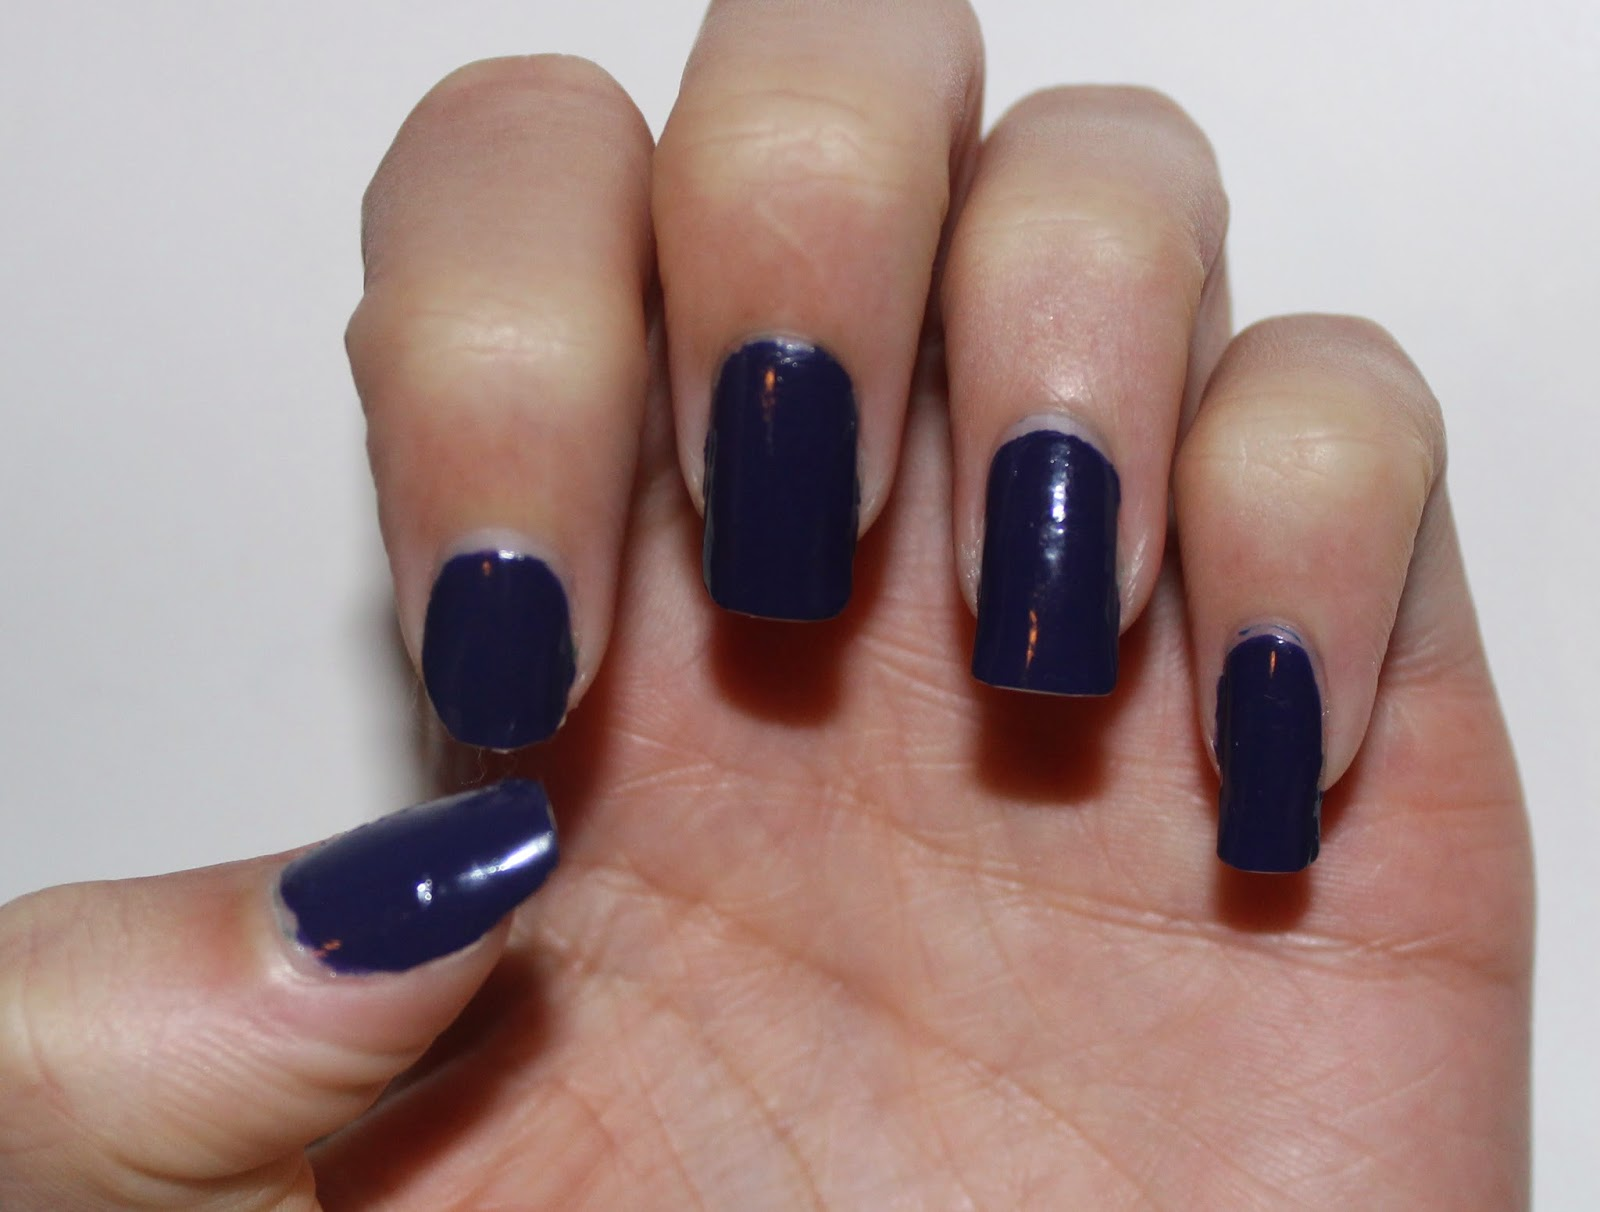 Rimmel London x Rita Ora 60 Seconds Nail Polish in Midnight Rendezvous